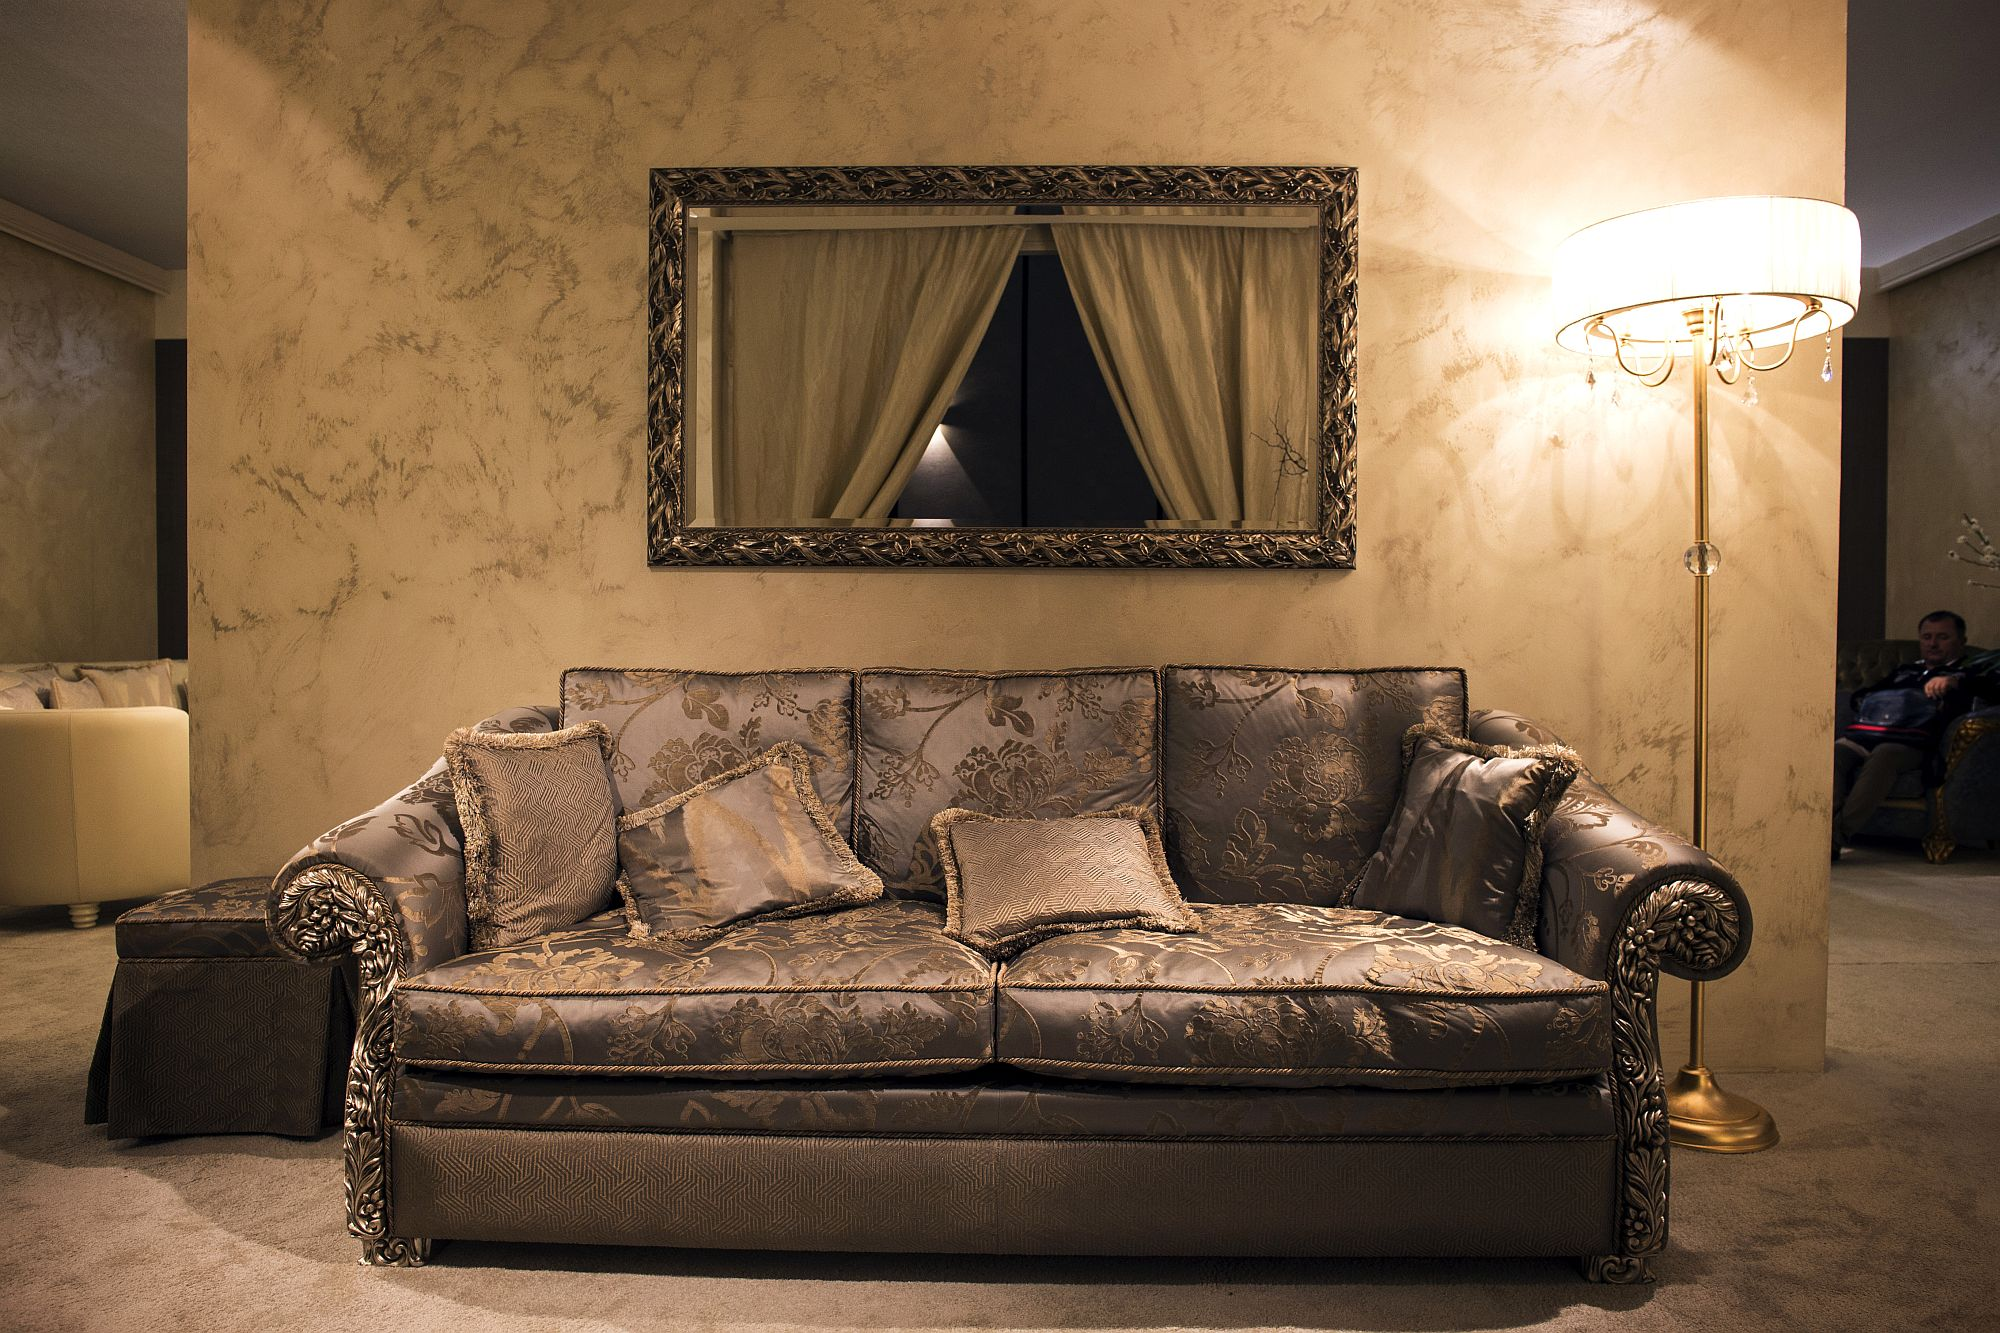 Traditional sofa and floor lamp bring luxurious and timeless charm to the interior